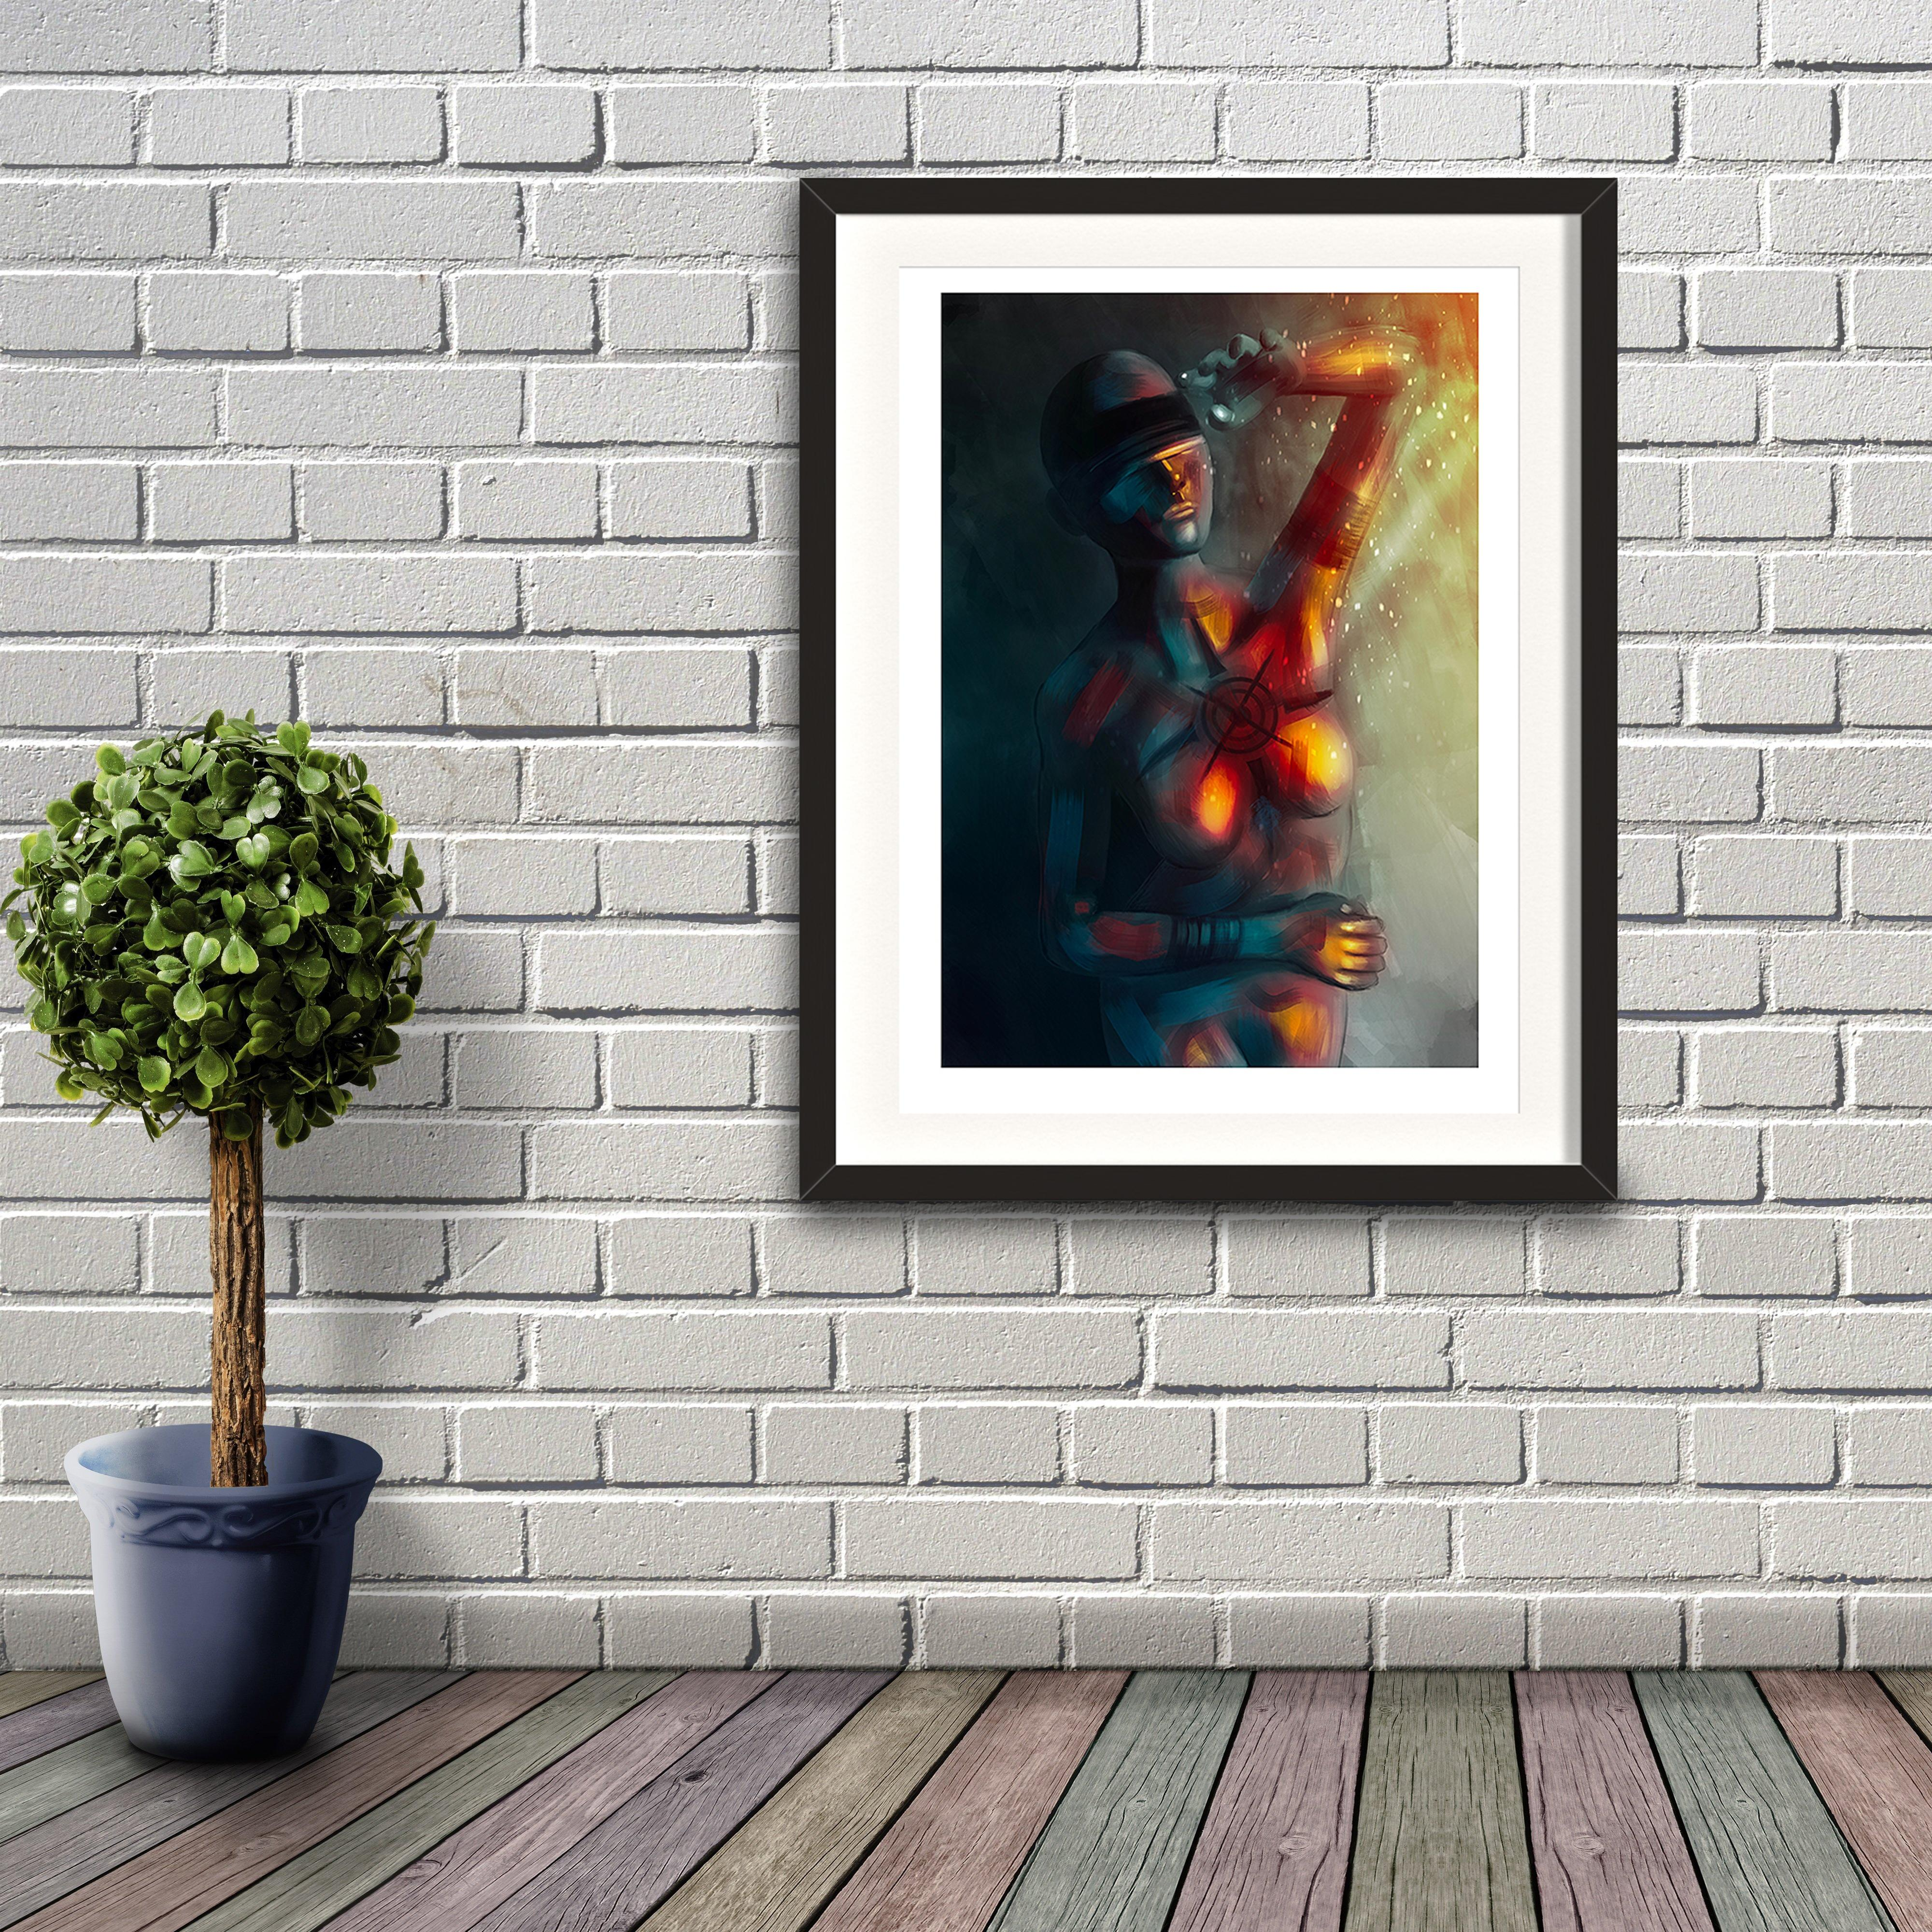 A digital painting by Lily Bourne printed on eco fine art paper titled Enlightened Moment showing an abstract blindfolded woman shielding herself from bright light and warmth. Artwork is shown in a black frame hanging on a brick wall.